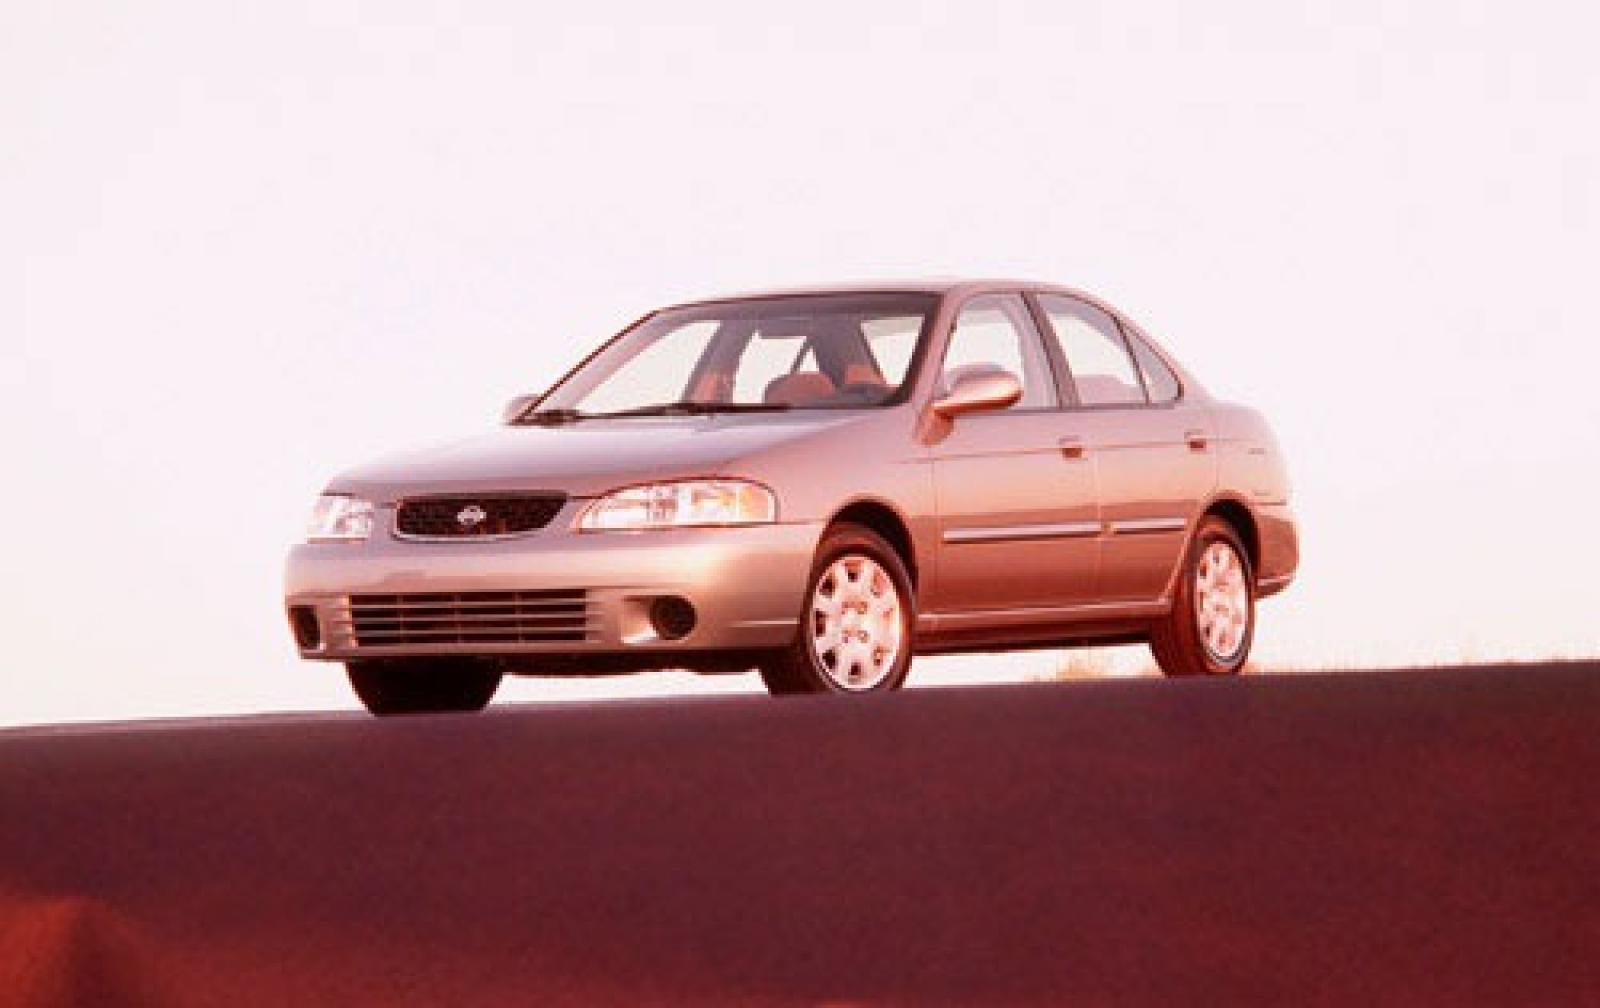 2003 nissan sentra information and photos zombiedrive. Black Bedroom Furniture Sets. Home Design Ideas